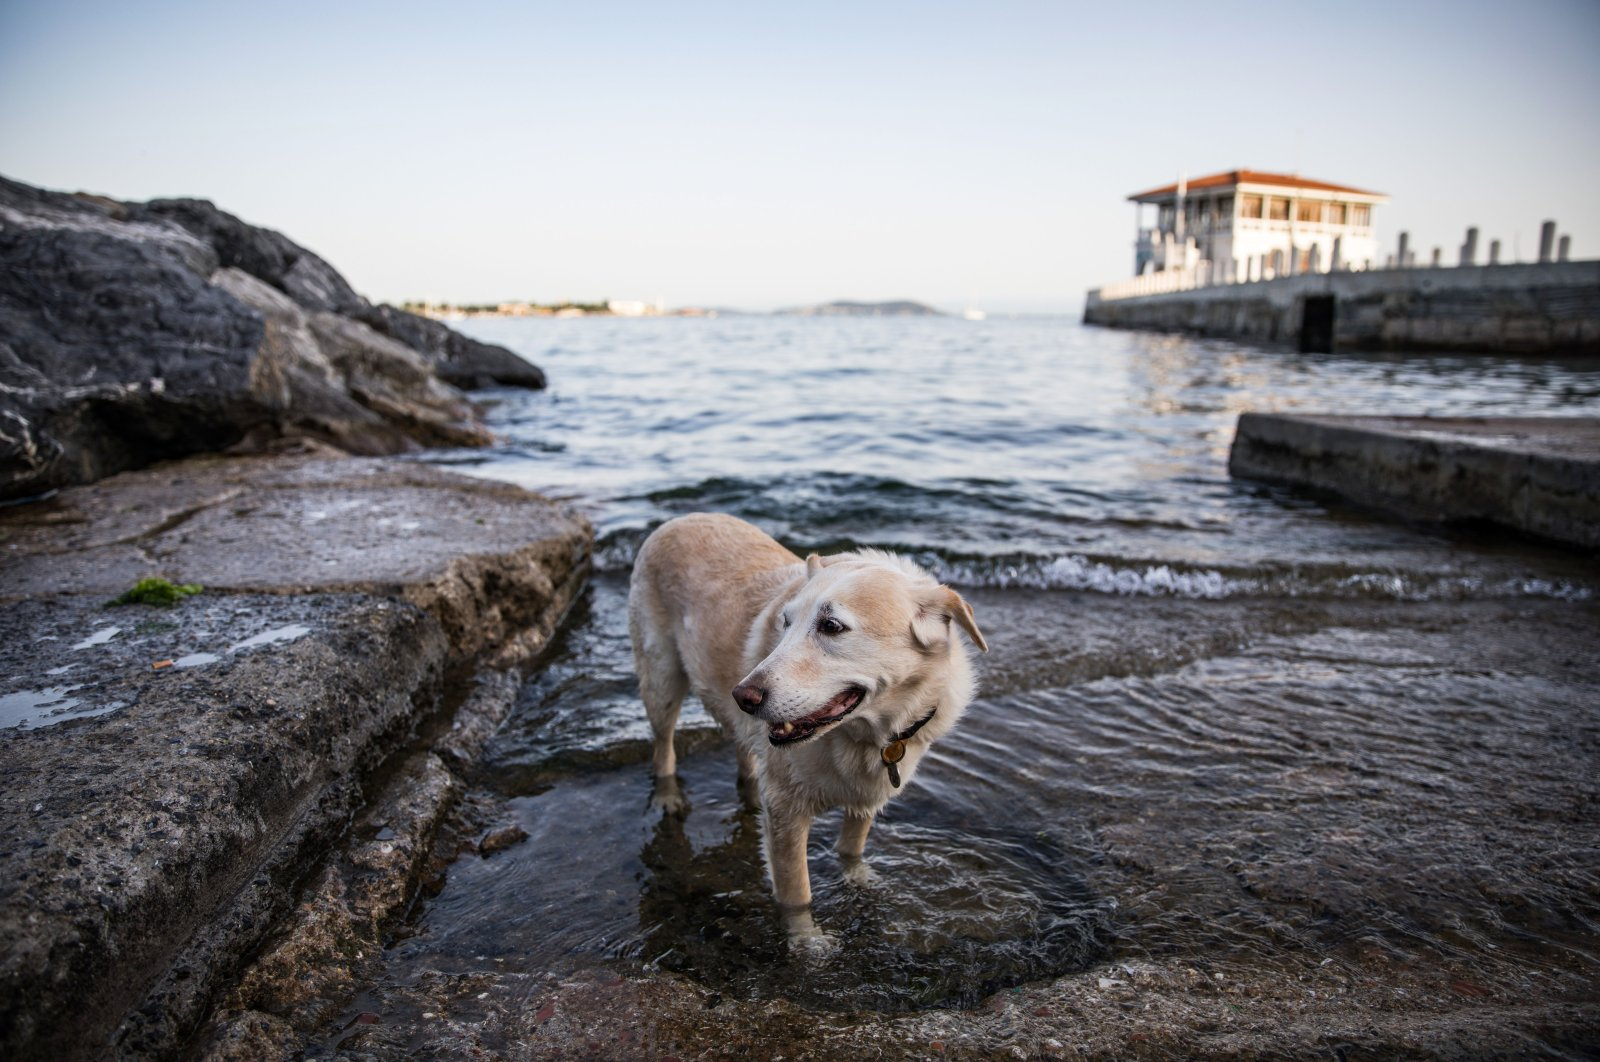 A dog stands in the sea in the Kadıköy district of Istanbul, Turkey, June 7, 2020. (Getty Images)